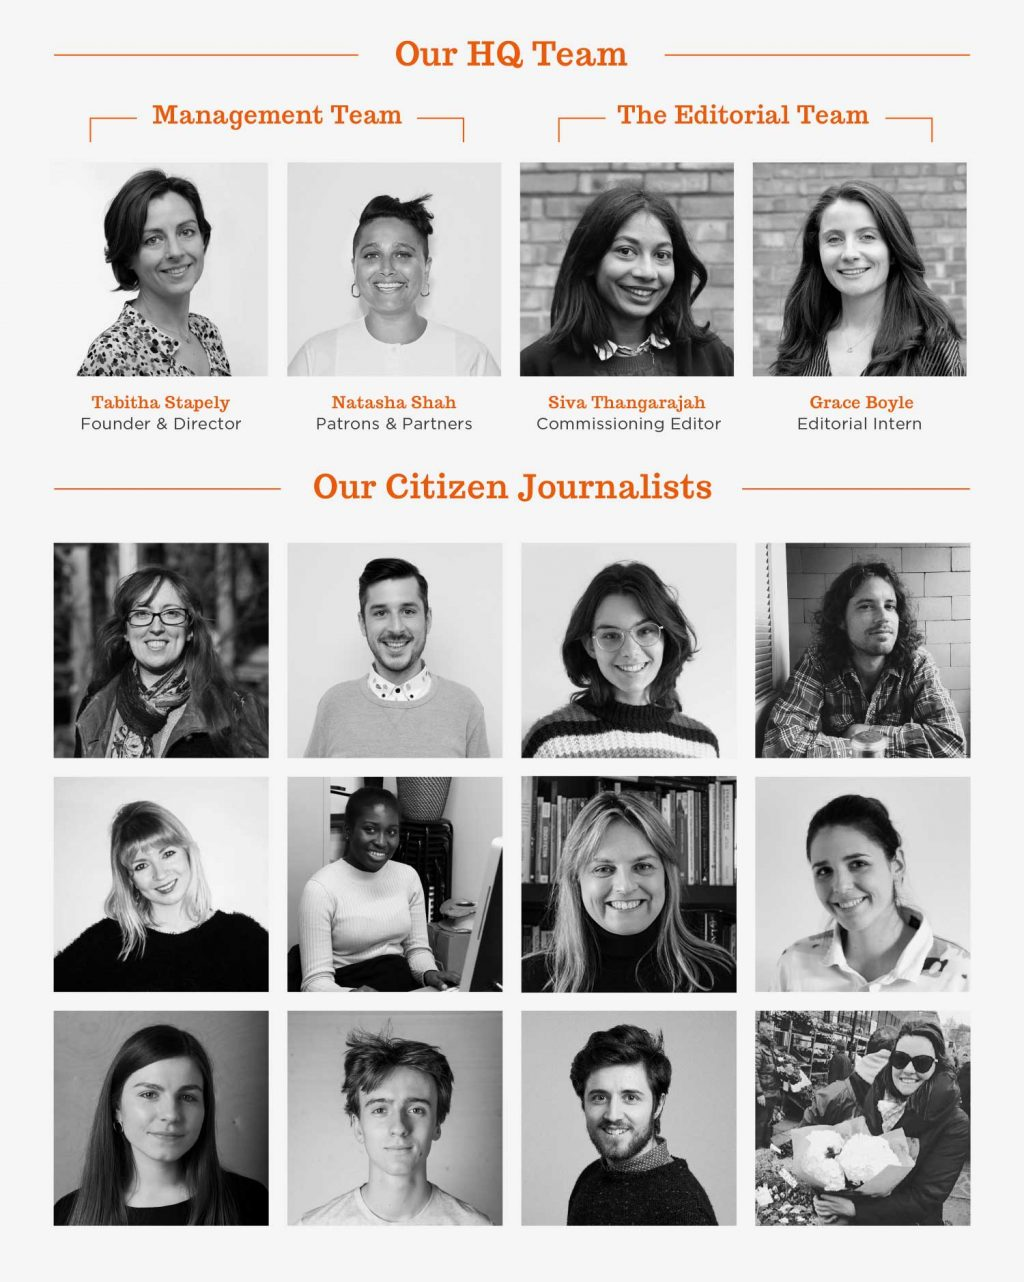 Poster showing extended editorial team at Roman Road LDN